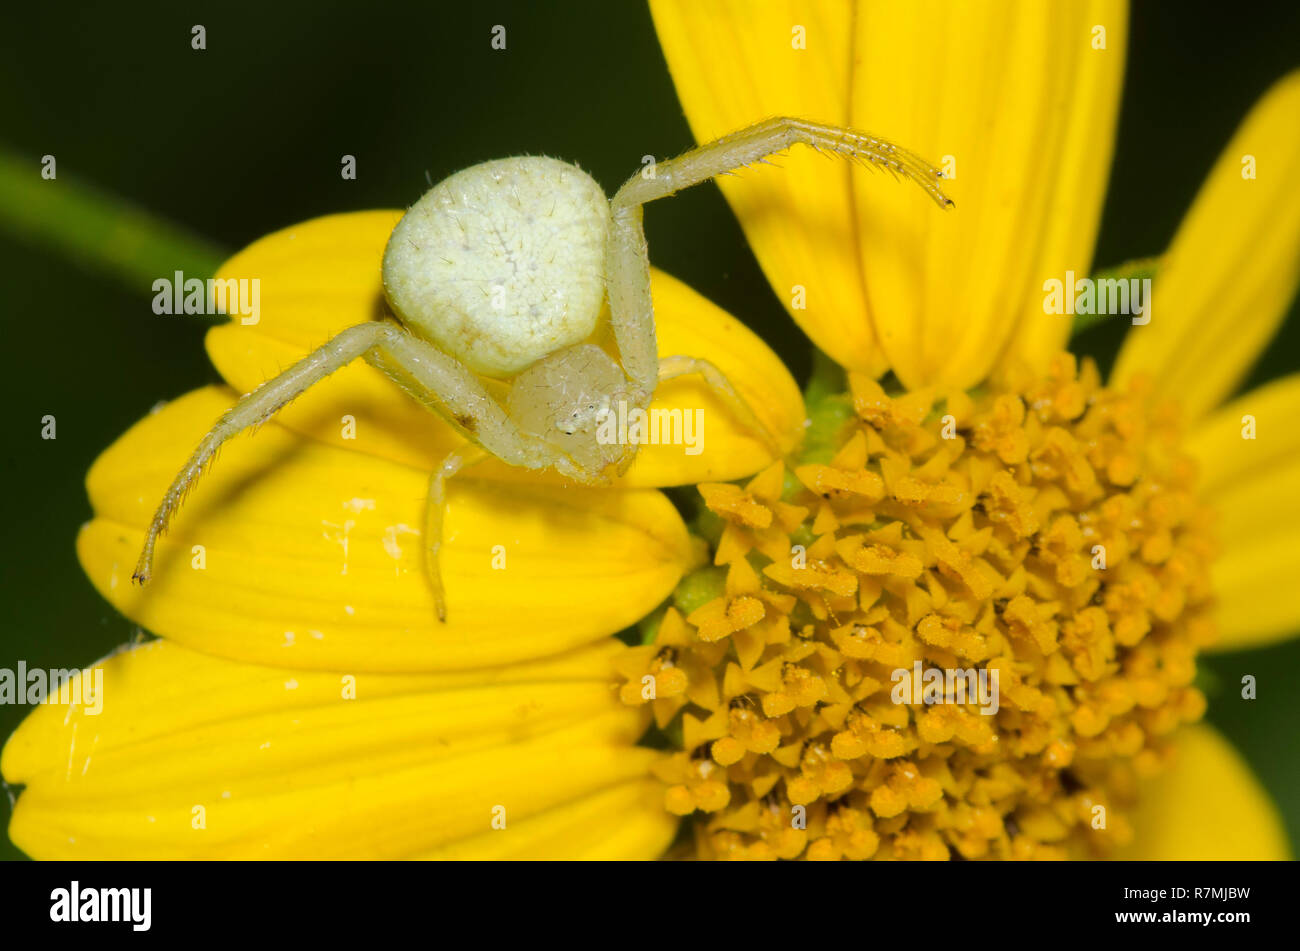 Crab Spider, Mecaphesa sp., lurking on Skeleton-Leaf Goldeneye, Viguiera stenoloba Stock Photo